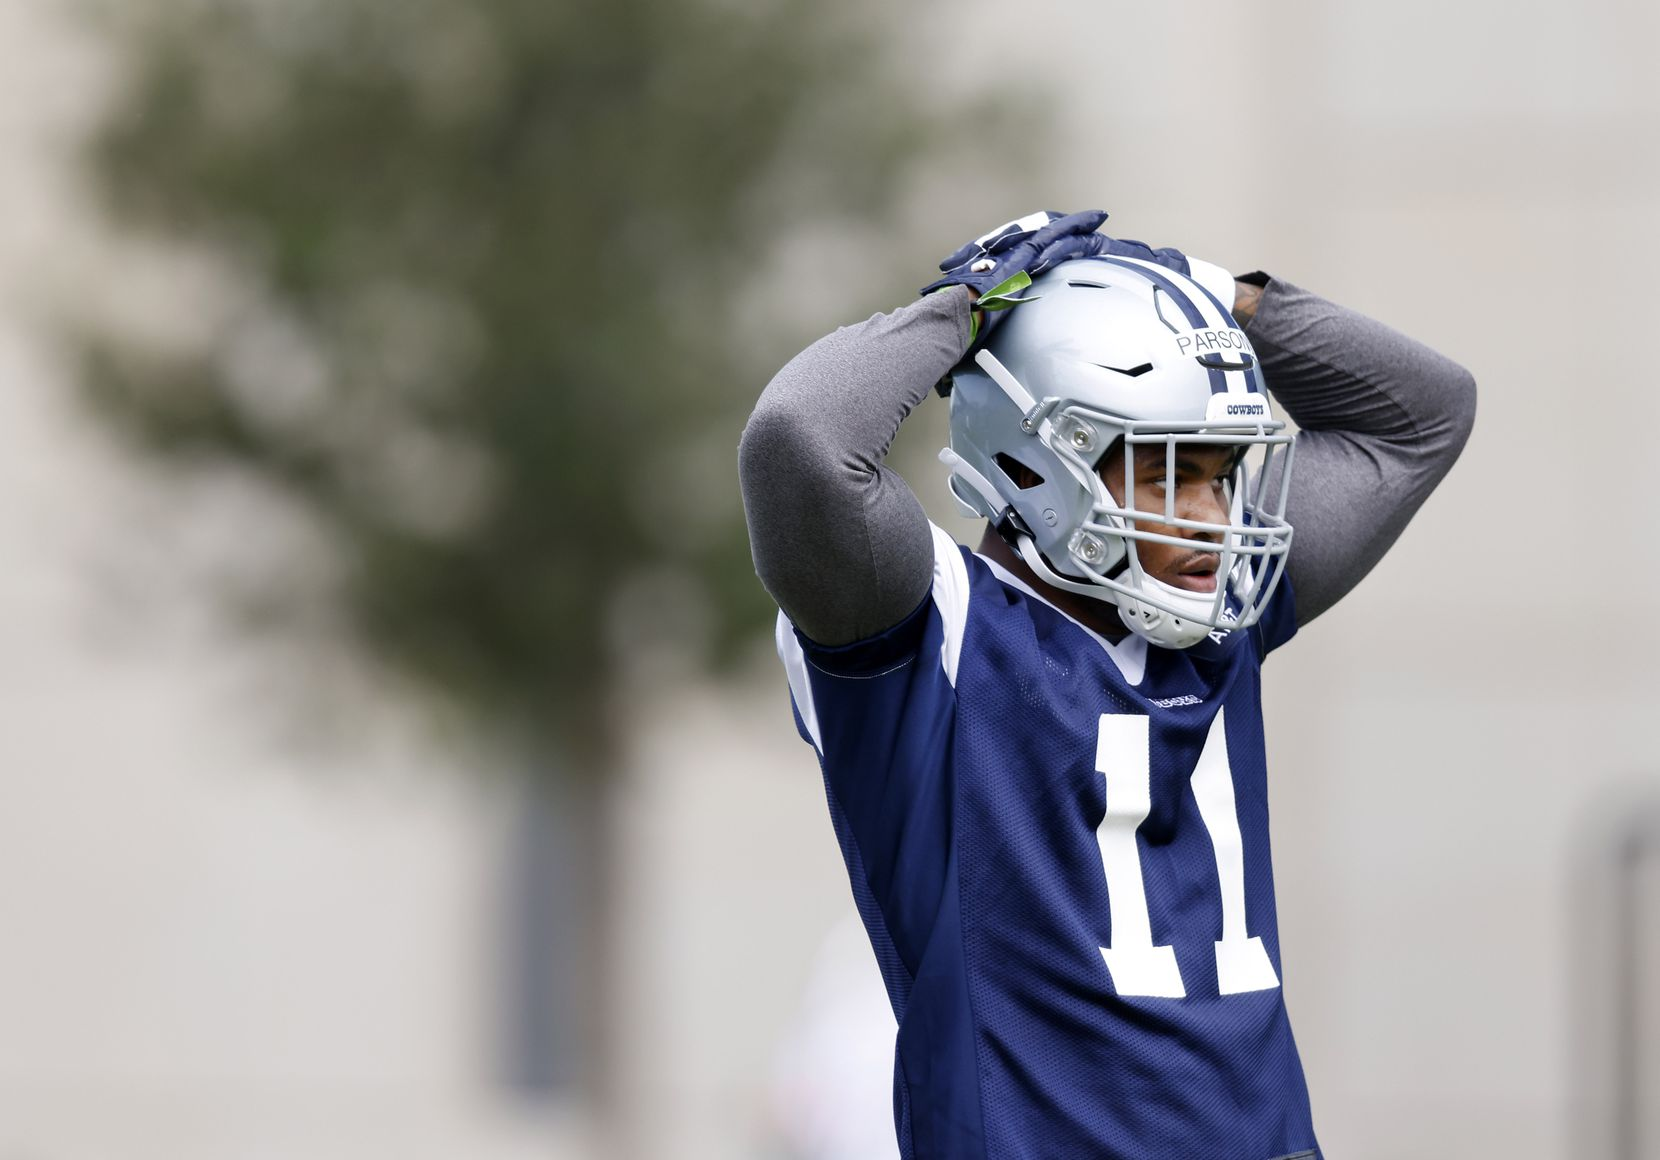 Dallas Cowboys rookie linebacker Micah Parsons (11) takes a breather during rookie minicamp at the The Star in Frisco, Texas, Friday, May 14, 2021. (Tom Fox/The Dallas Morning News)